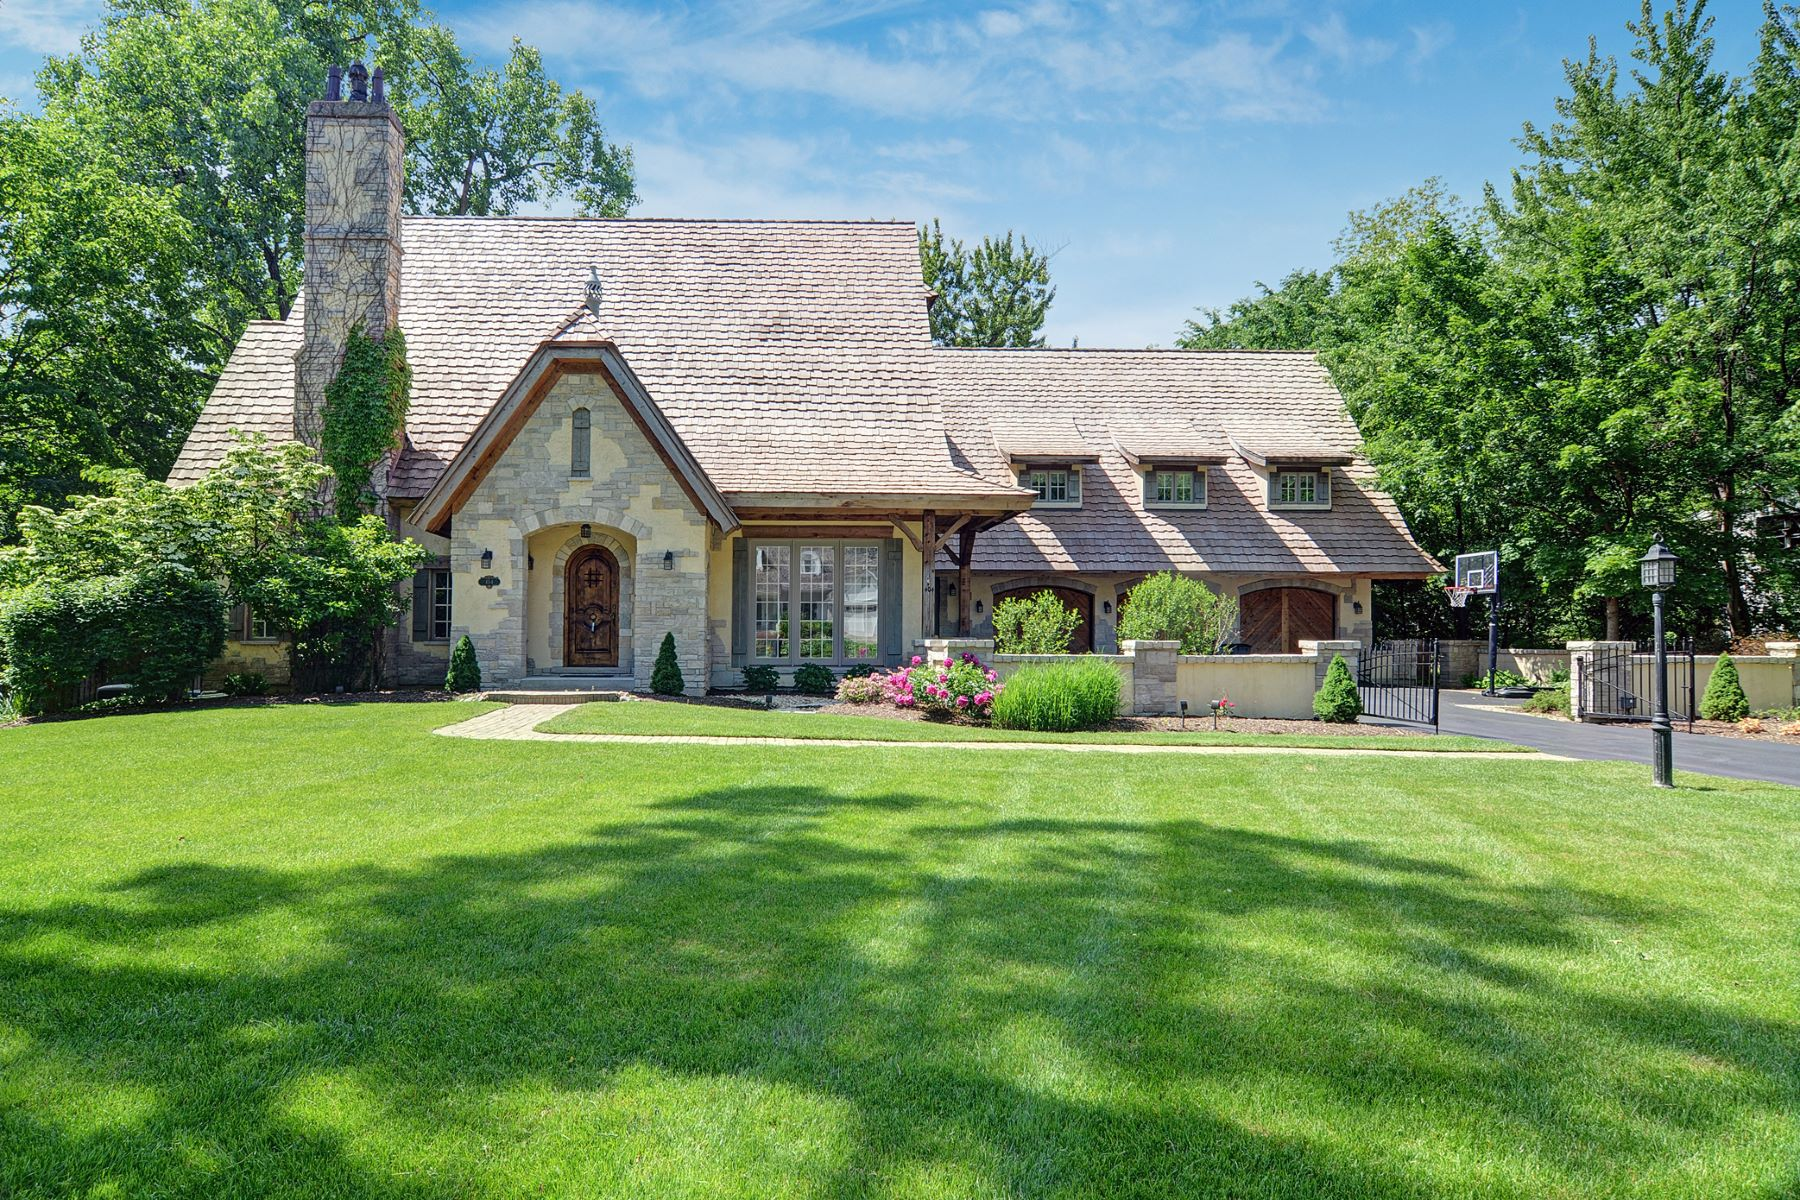 Casa Unifamiliar por un Venta en Birchwood Road 404 Birchwood Rd Hinsdale, Illinois, 60521 Estados Unidos